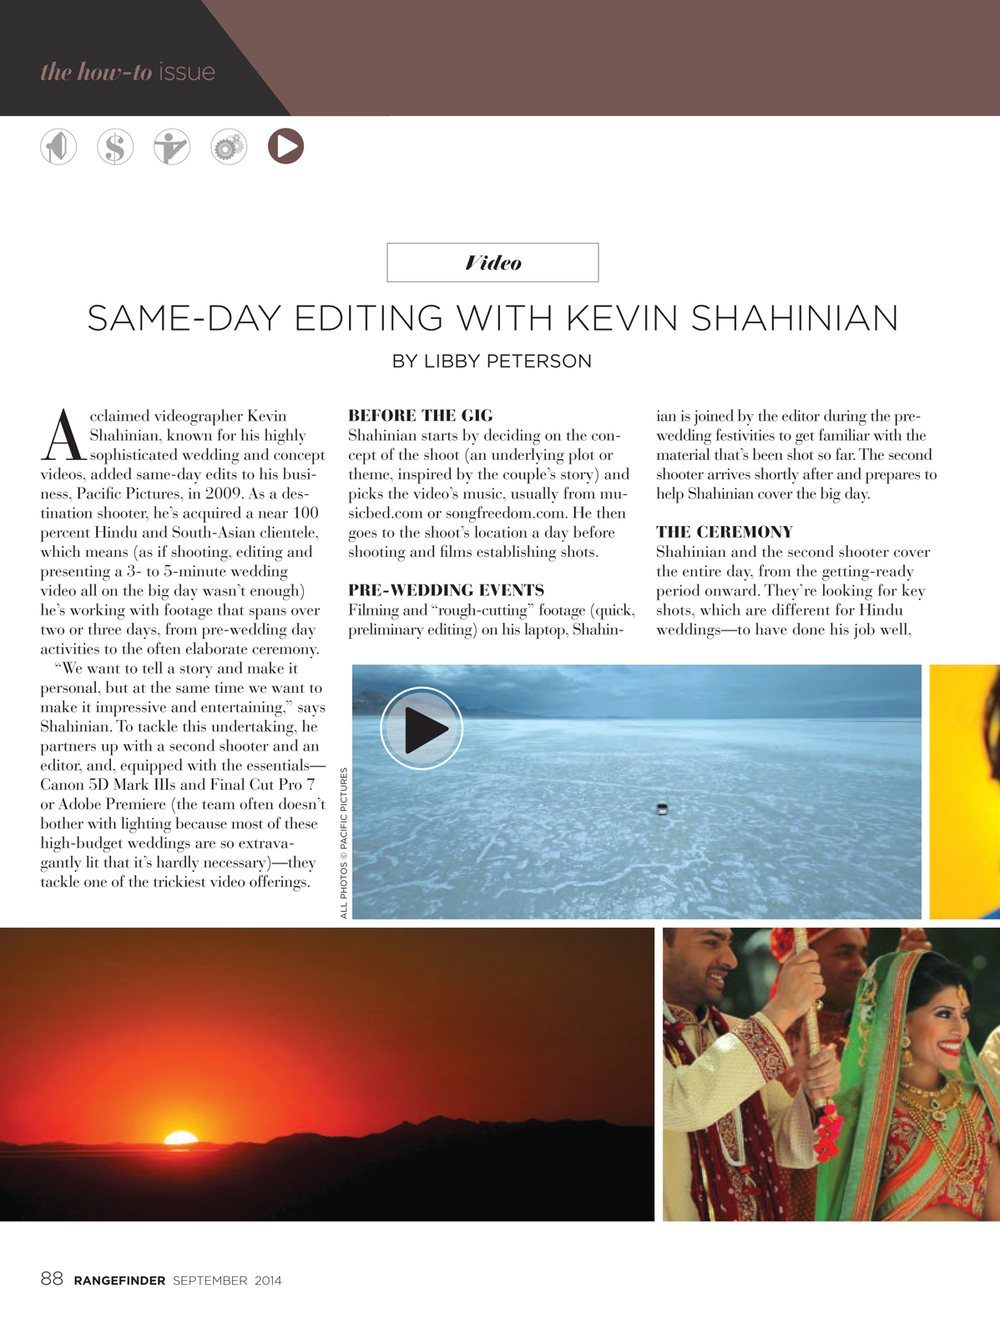 SAME-DAY-EDITING WITH KEVIN SHAHINIAN